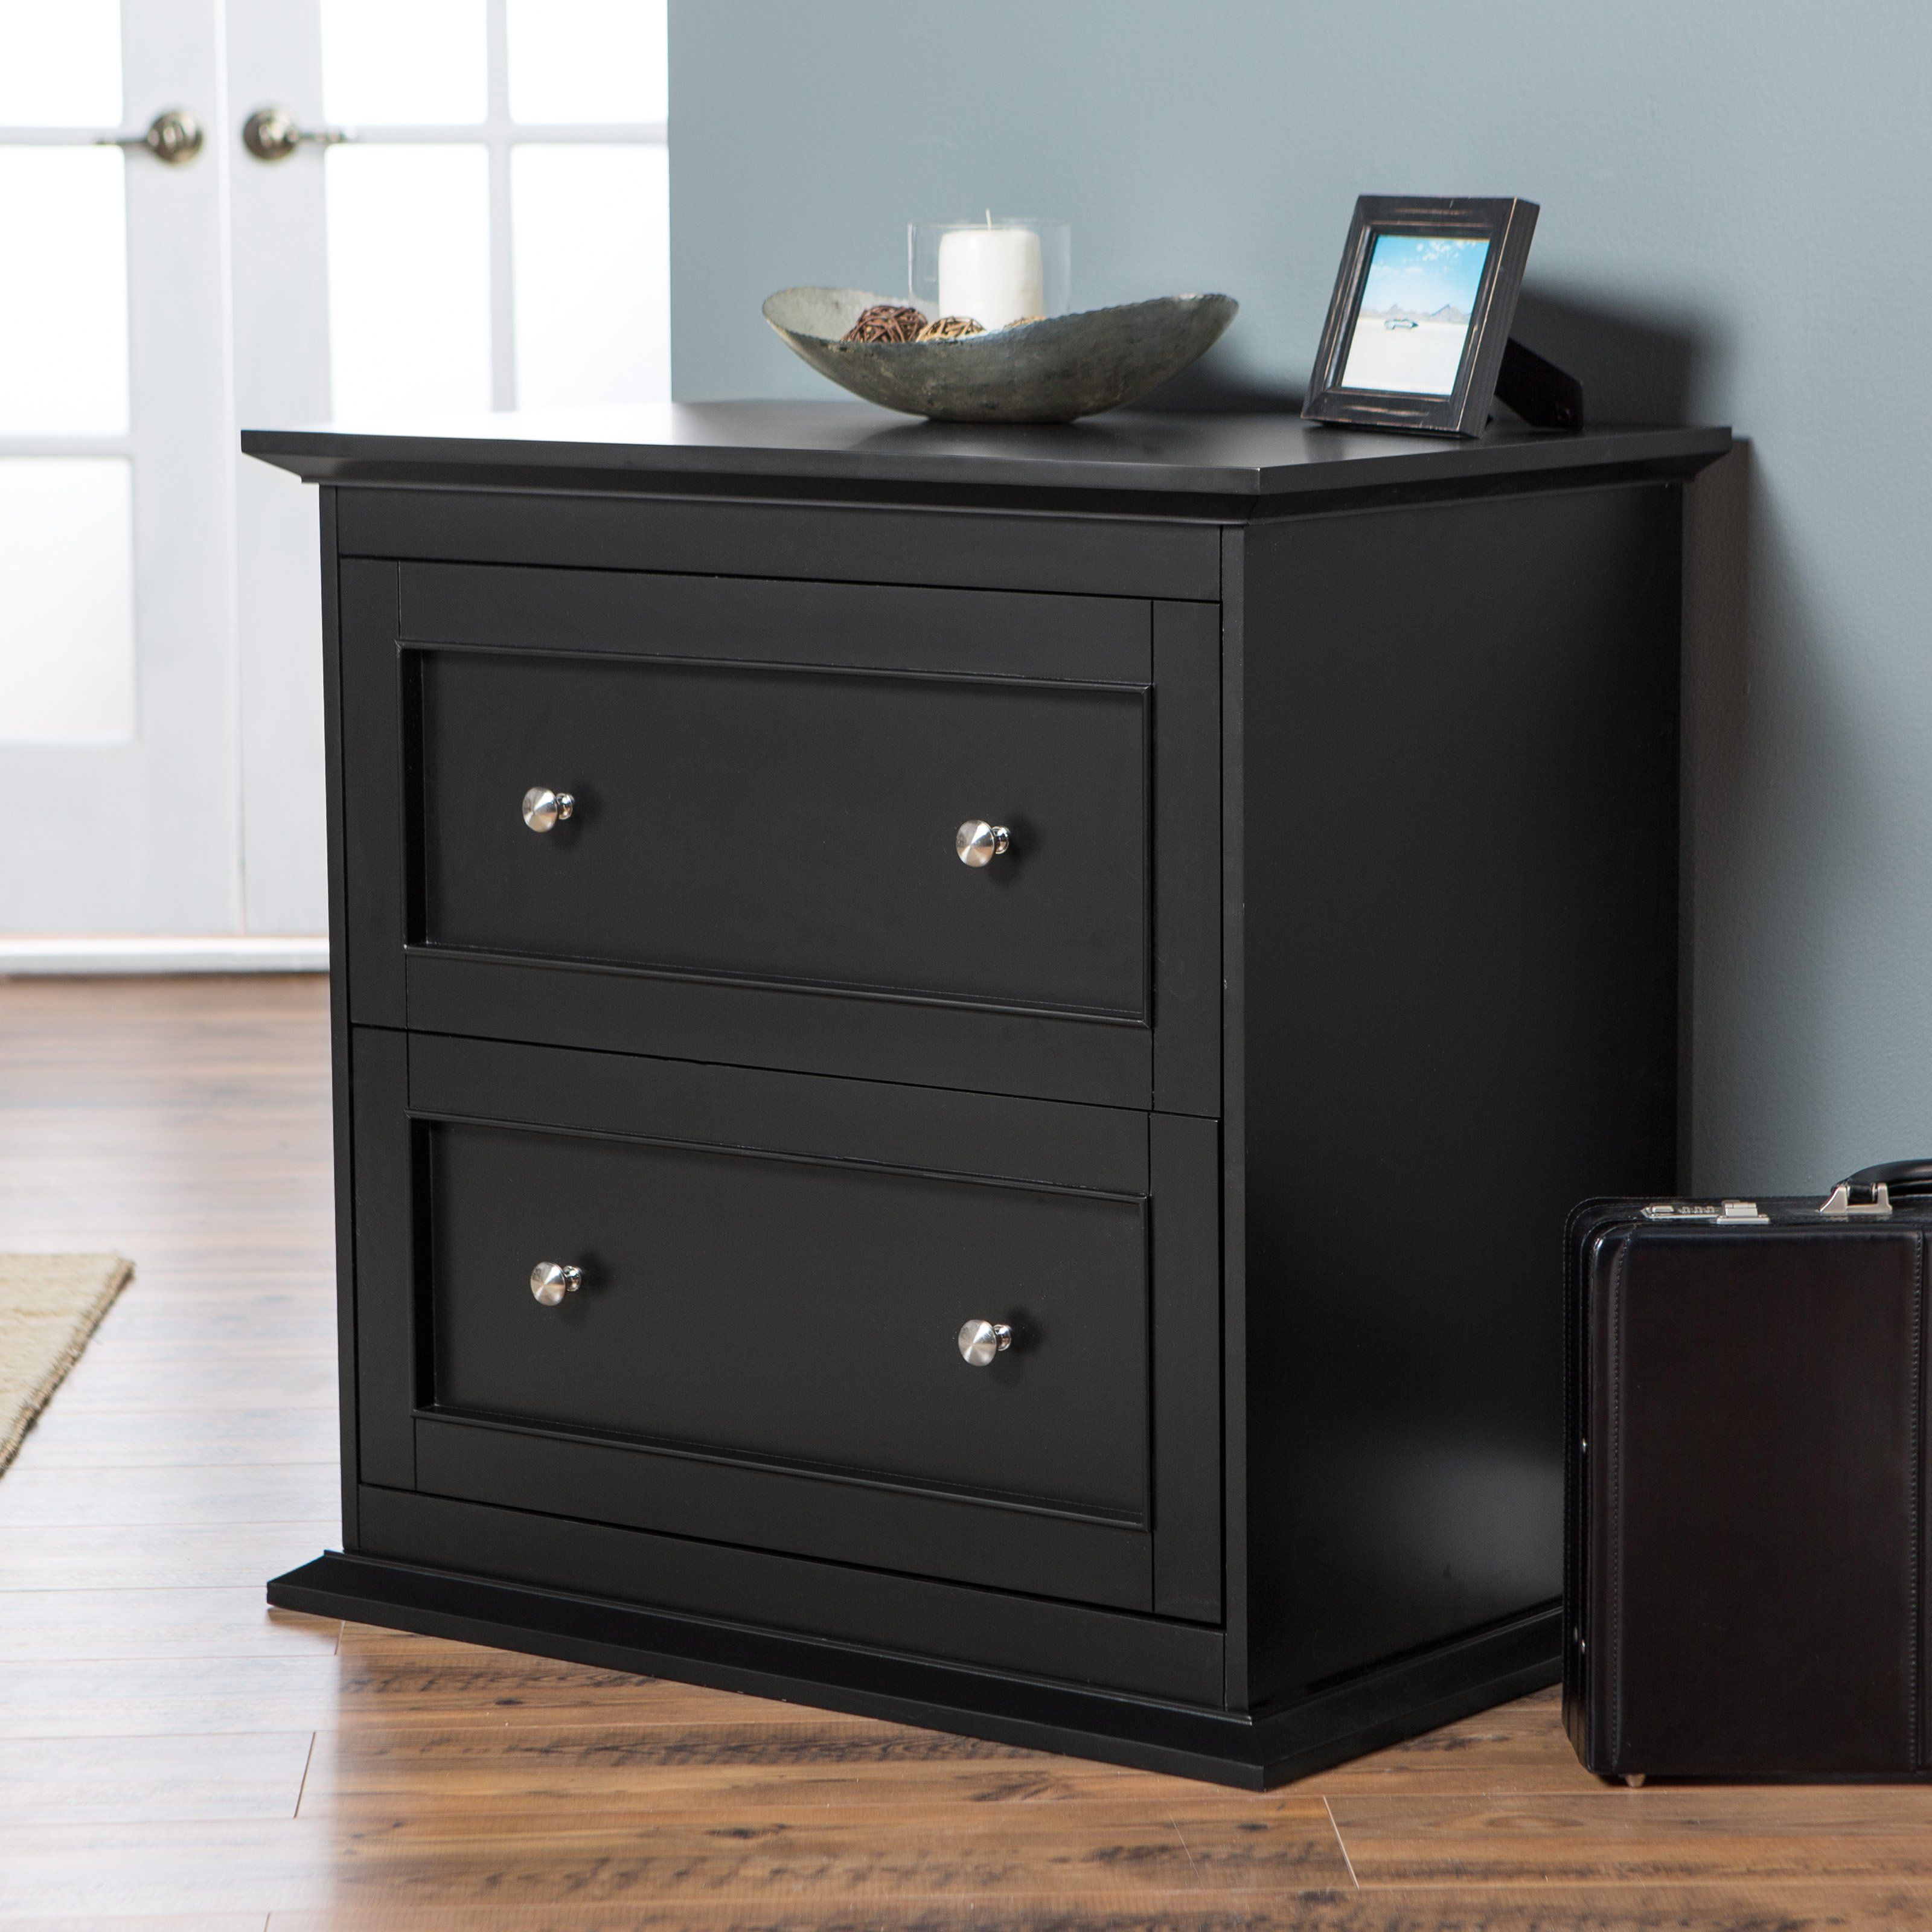 drawer profile products storage drawers category view filing cabinet office cabinets vertical range online proceed nz